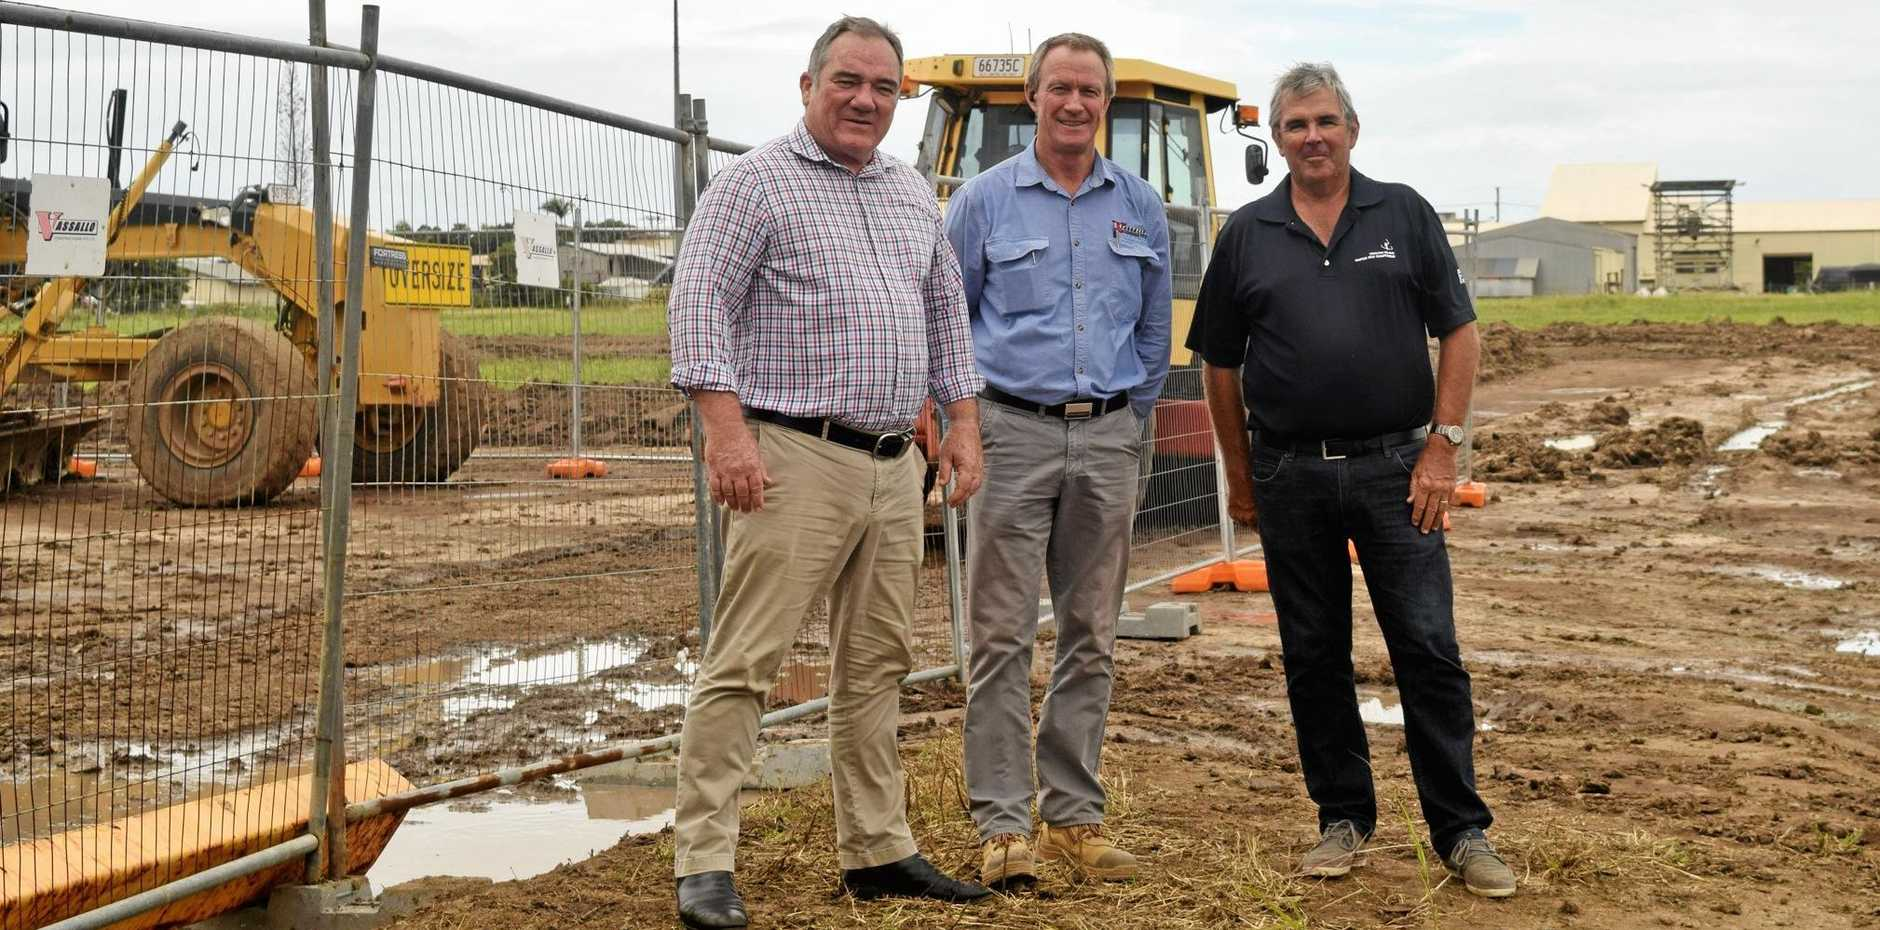 UNDER CONSTRUCTION: Mark Kelly from Knight Frank, Vassallo Constructions project manager Mark Bowler and investor and owner Peter Woolcock.